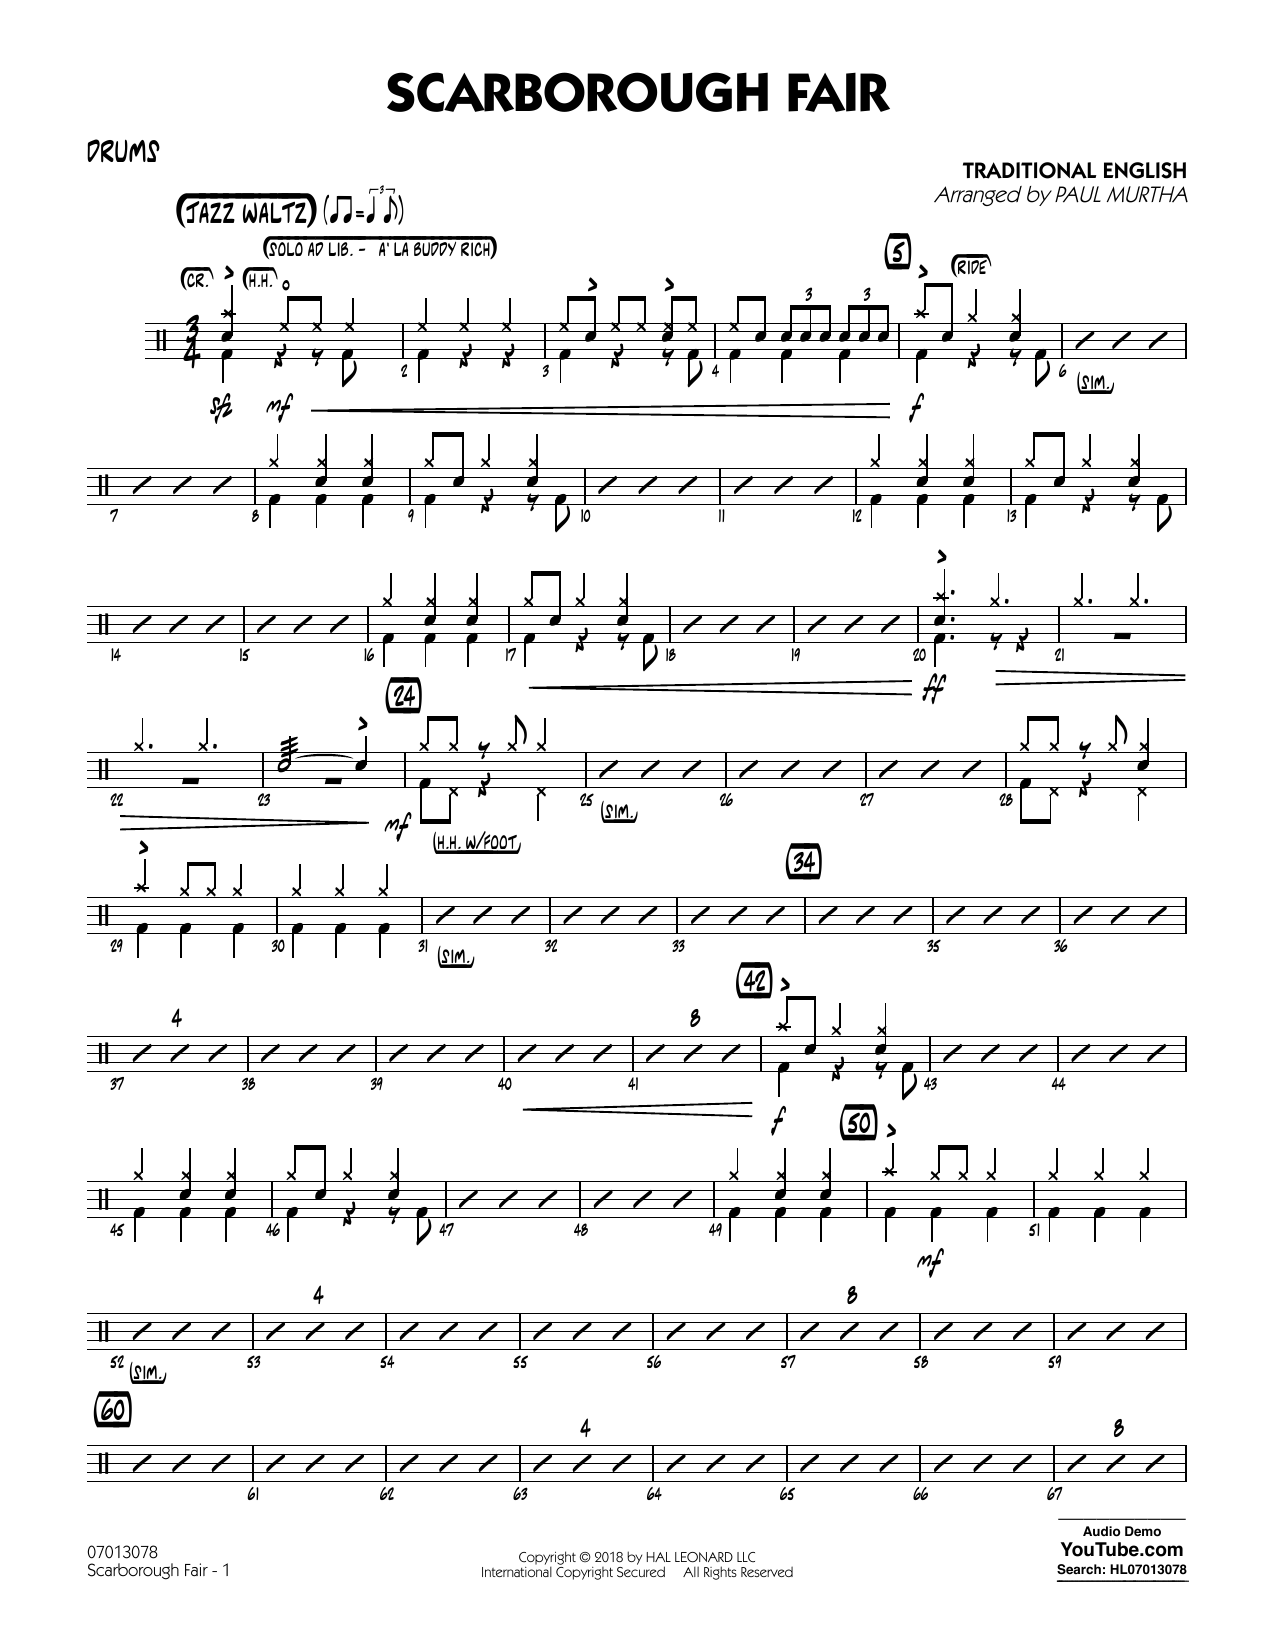 Paul Murtha Scarborough Fair - Drums sheet music notes and chords. Download Printable PDF.